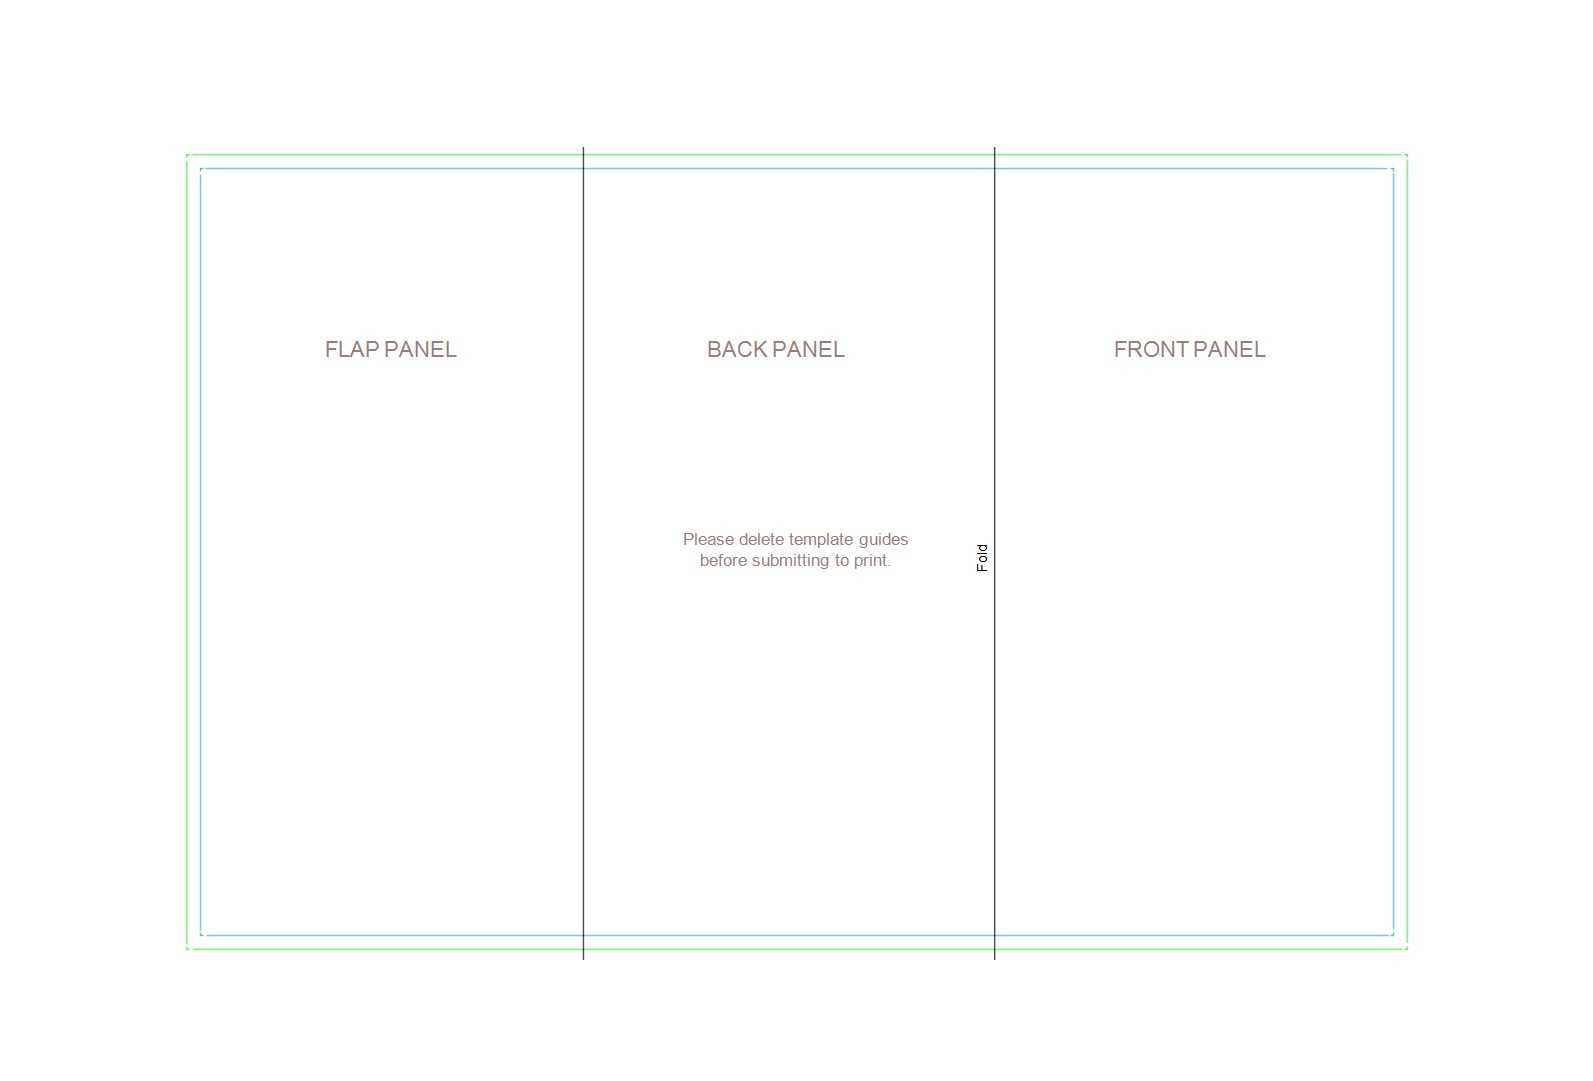 50 Free Pamphlet Templates [Word / Google Docs] ᐅ Template Lab Intended For Google Doc Brochure Template